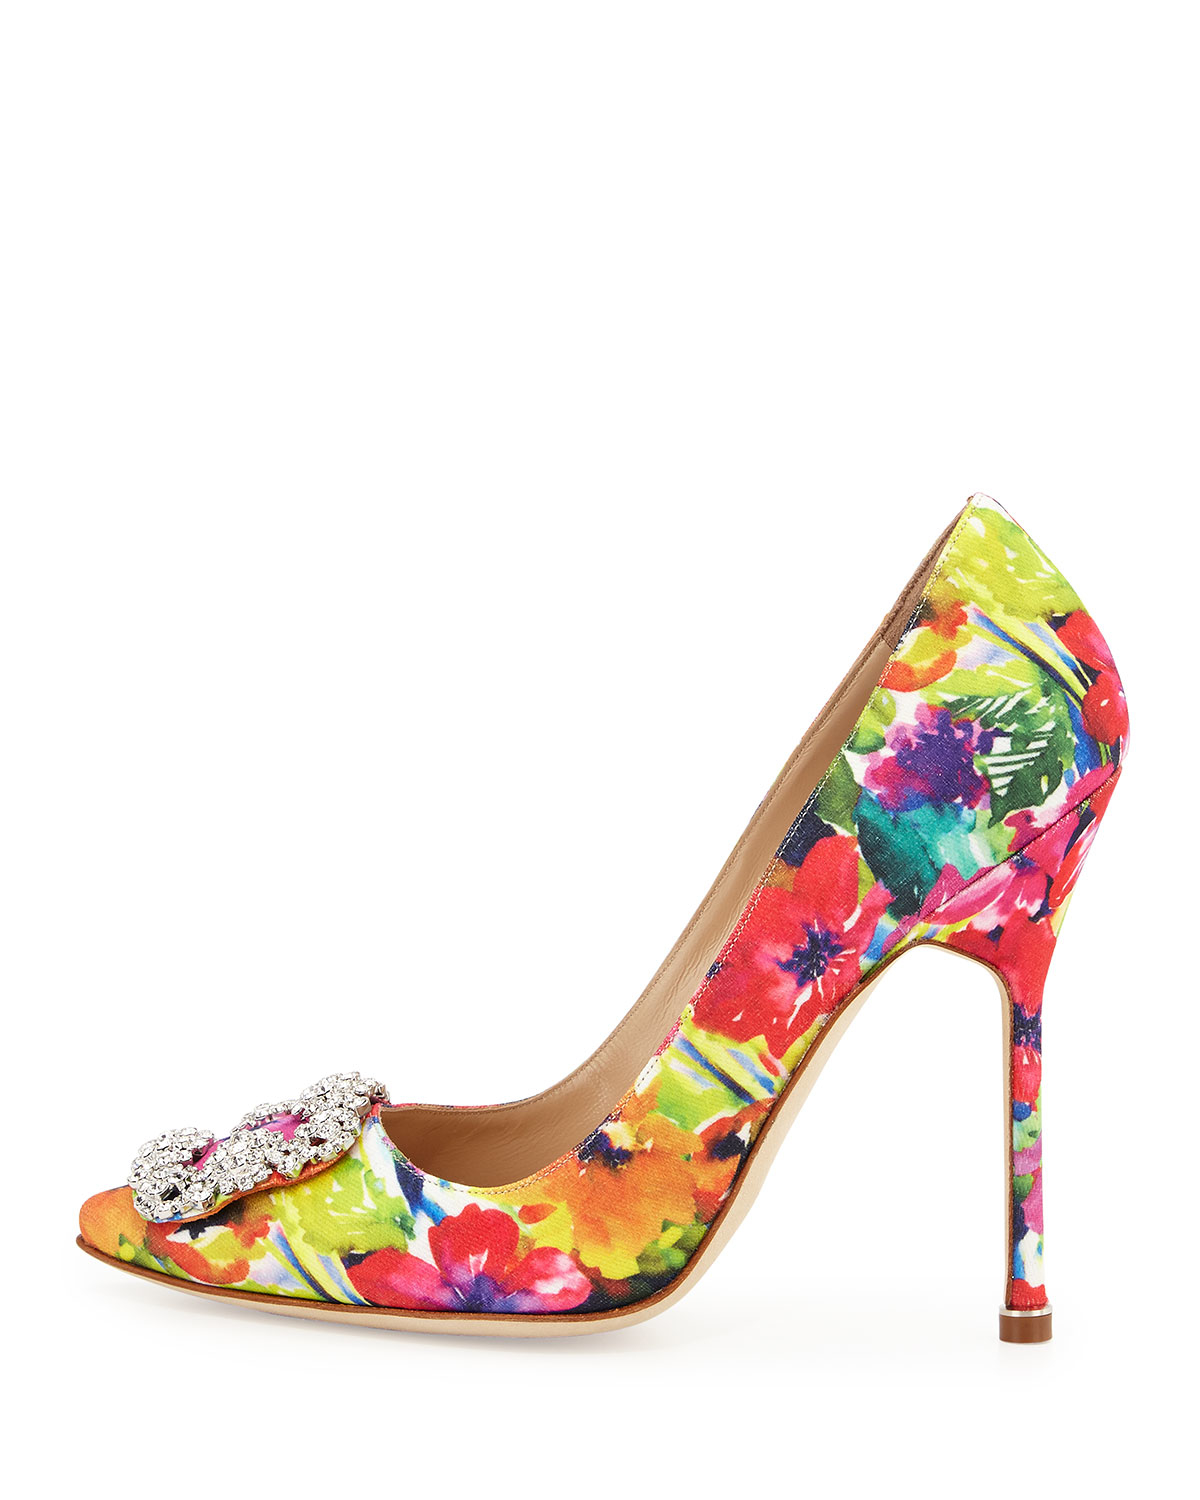 b464838742f Manolo blahnik Hangisi Floral-print 115mm Satin Pump in .